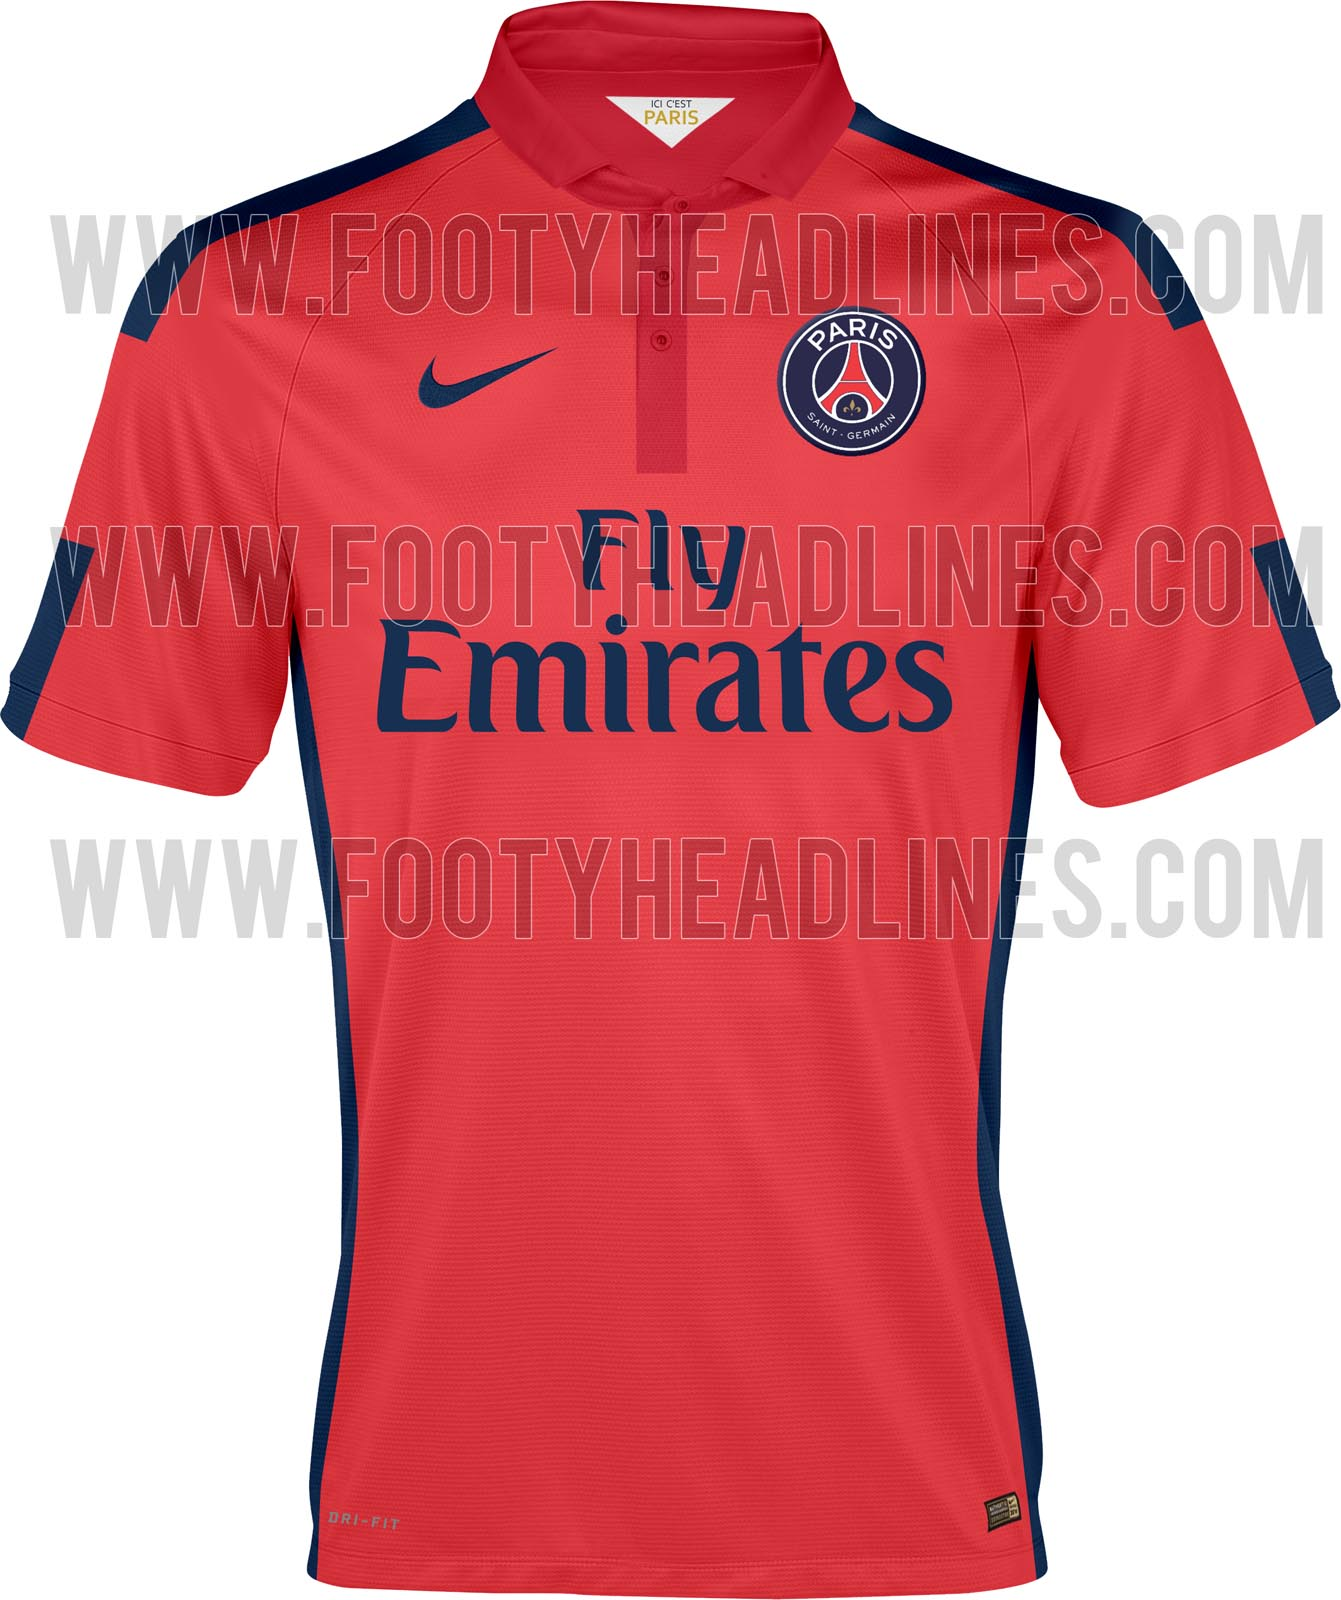 115f78816b8 The new Paris 2014-2015 Third Kit is mainly red with navy logos and a dark  red polo collar. Like the new Manchester United 14-15 Third Kit